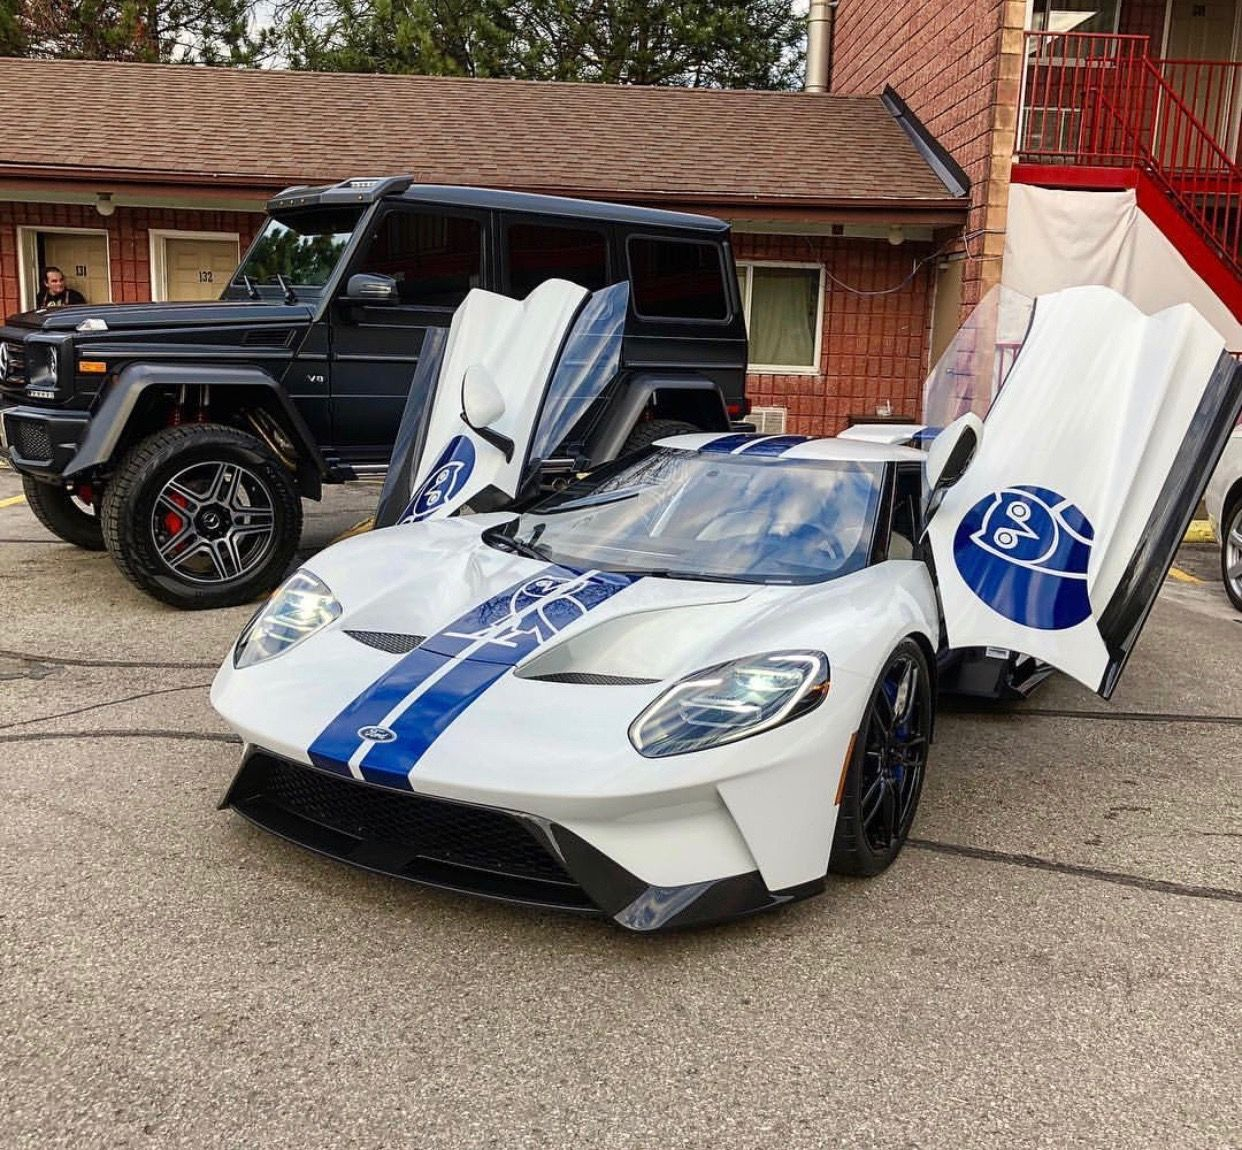 Ford Gt Painted In White W Blue Racing Stripes With The Ovo Owl Logo In The Center And Two More Ovo Owl Logos Under The Side View Mirrors And A